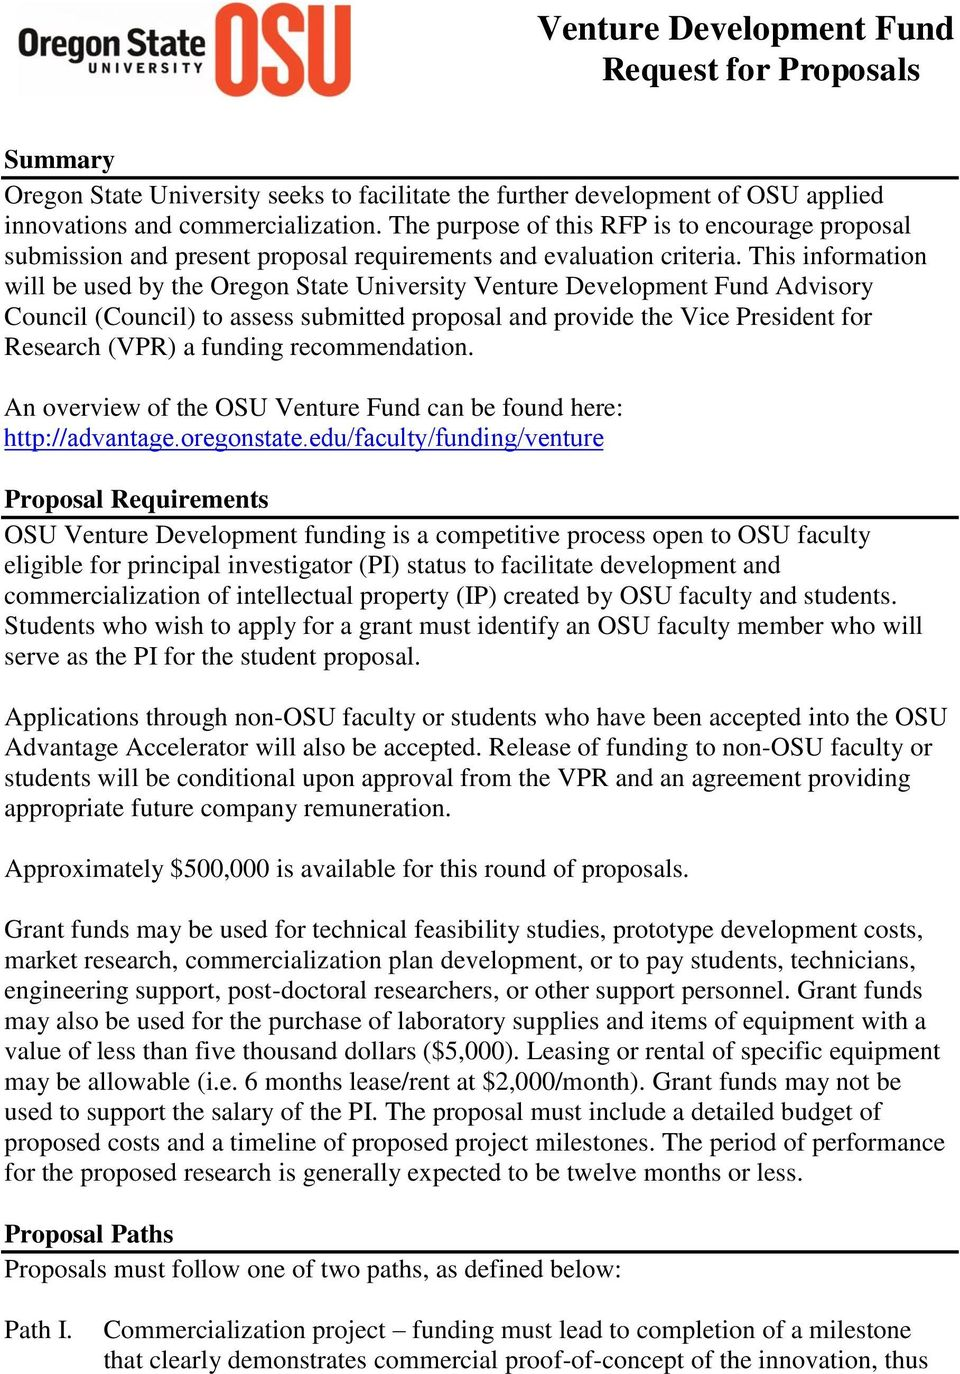 property development funding proposal